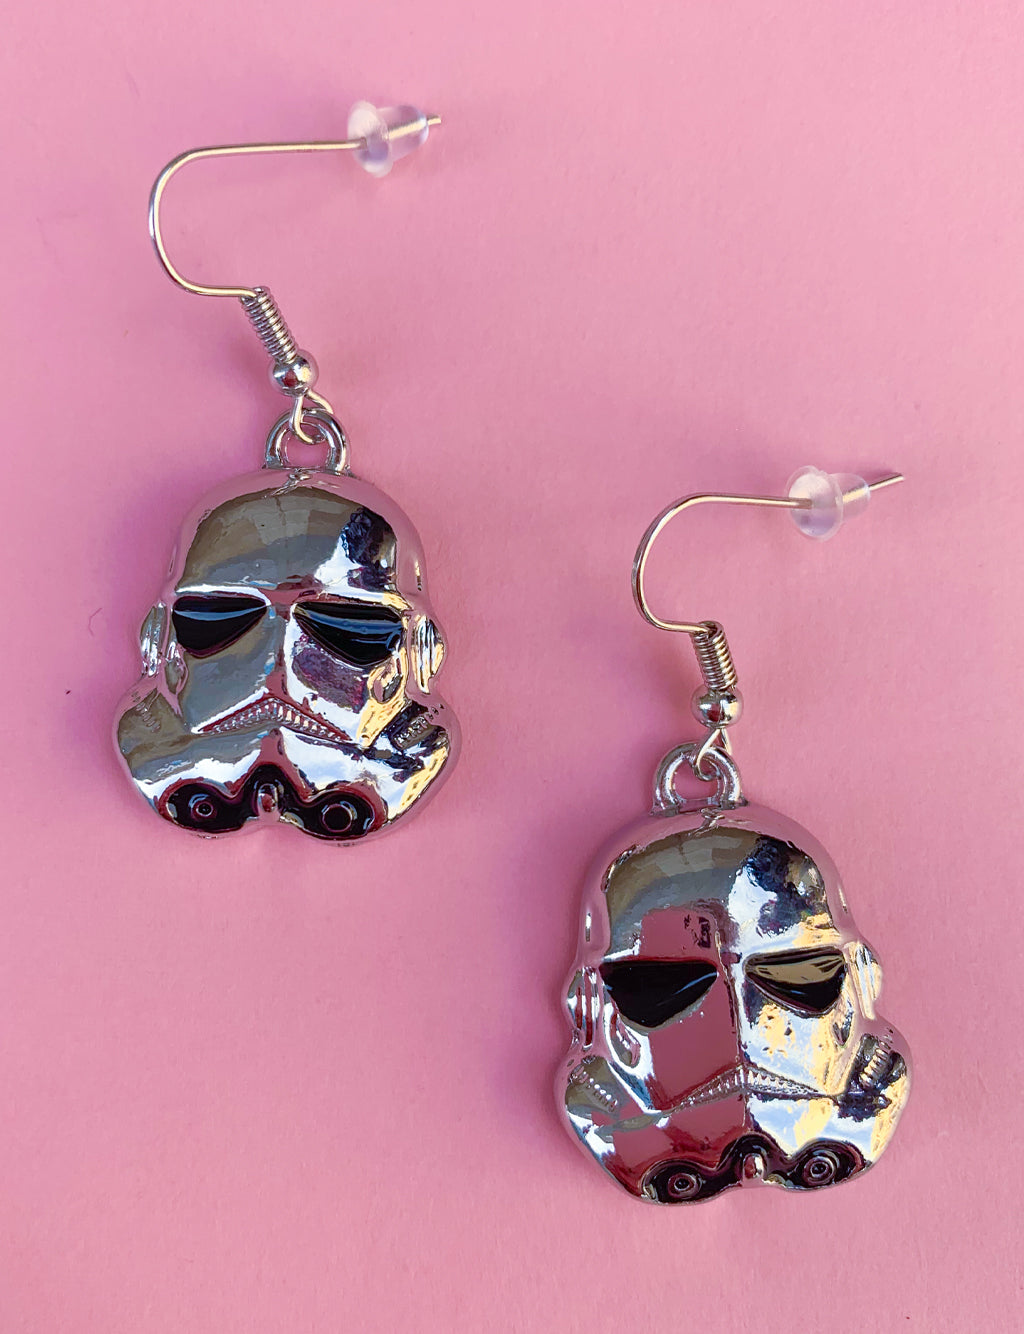 STORM TROOPER EARRINGS